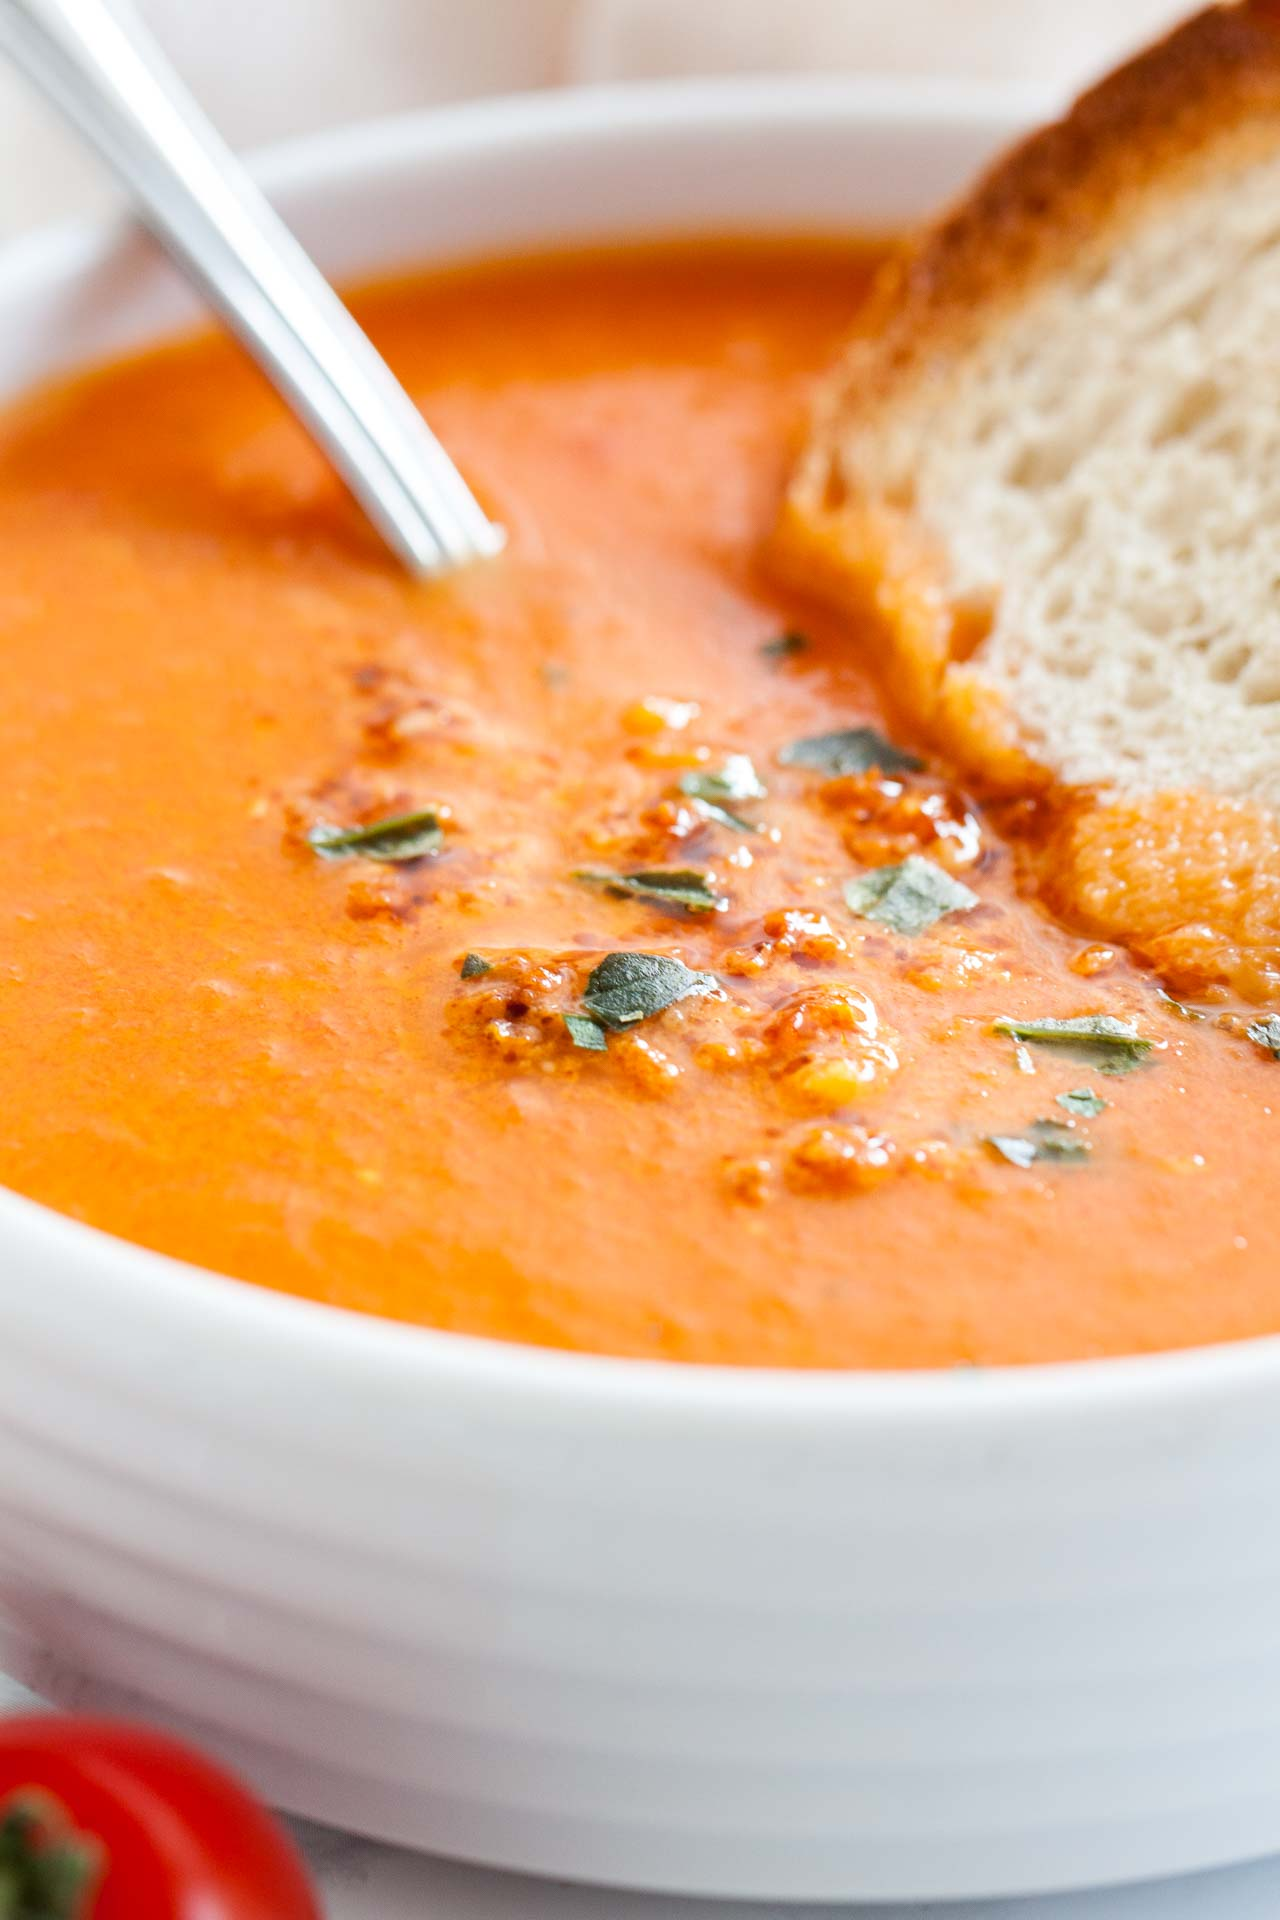 A creamy and healthy Roasted Tomato Soup that's loaded with fresh flavors and super easy to make! This easy tomato basil soup recipe is perfect for a cold winter day, super tasty, and has less than 200 kcal for a big bowl. Serve it with rustic bread or grilled cheese sandwiches for dinner or lunch!